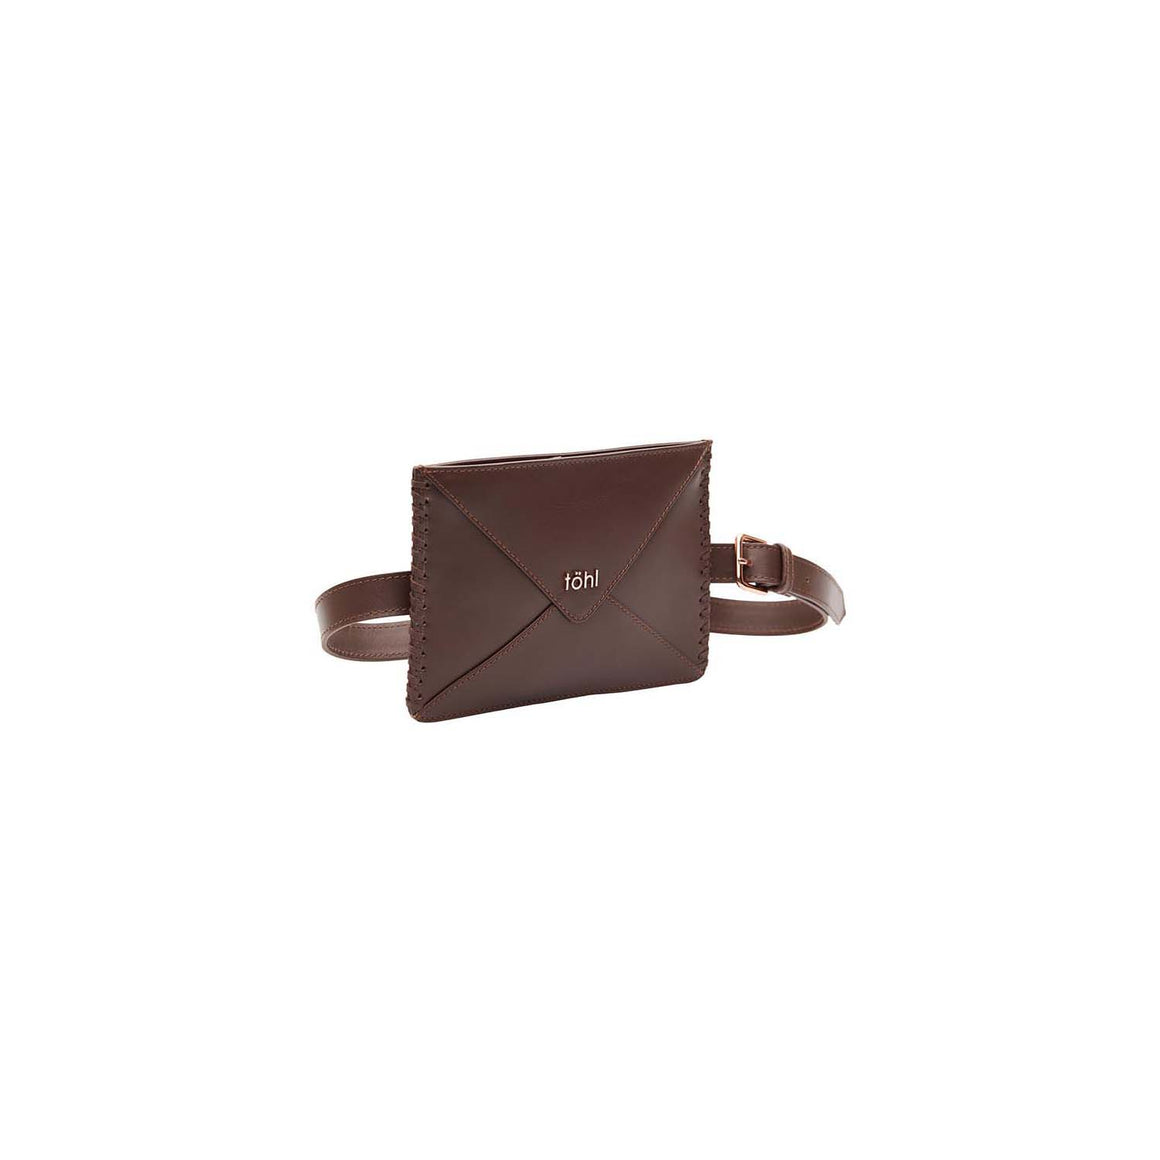 WP 0002 - TOHL JUNIPER WOMEN'S WAIST POUCH - CHOCO